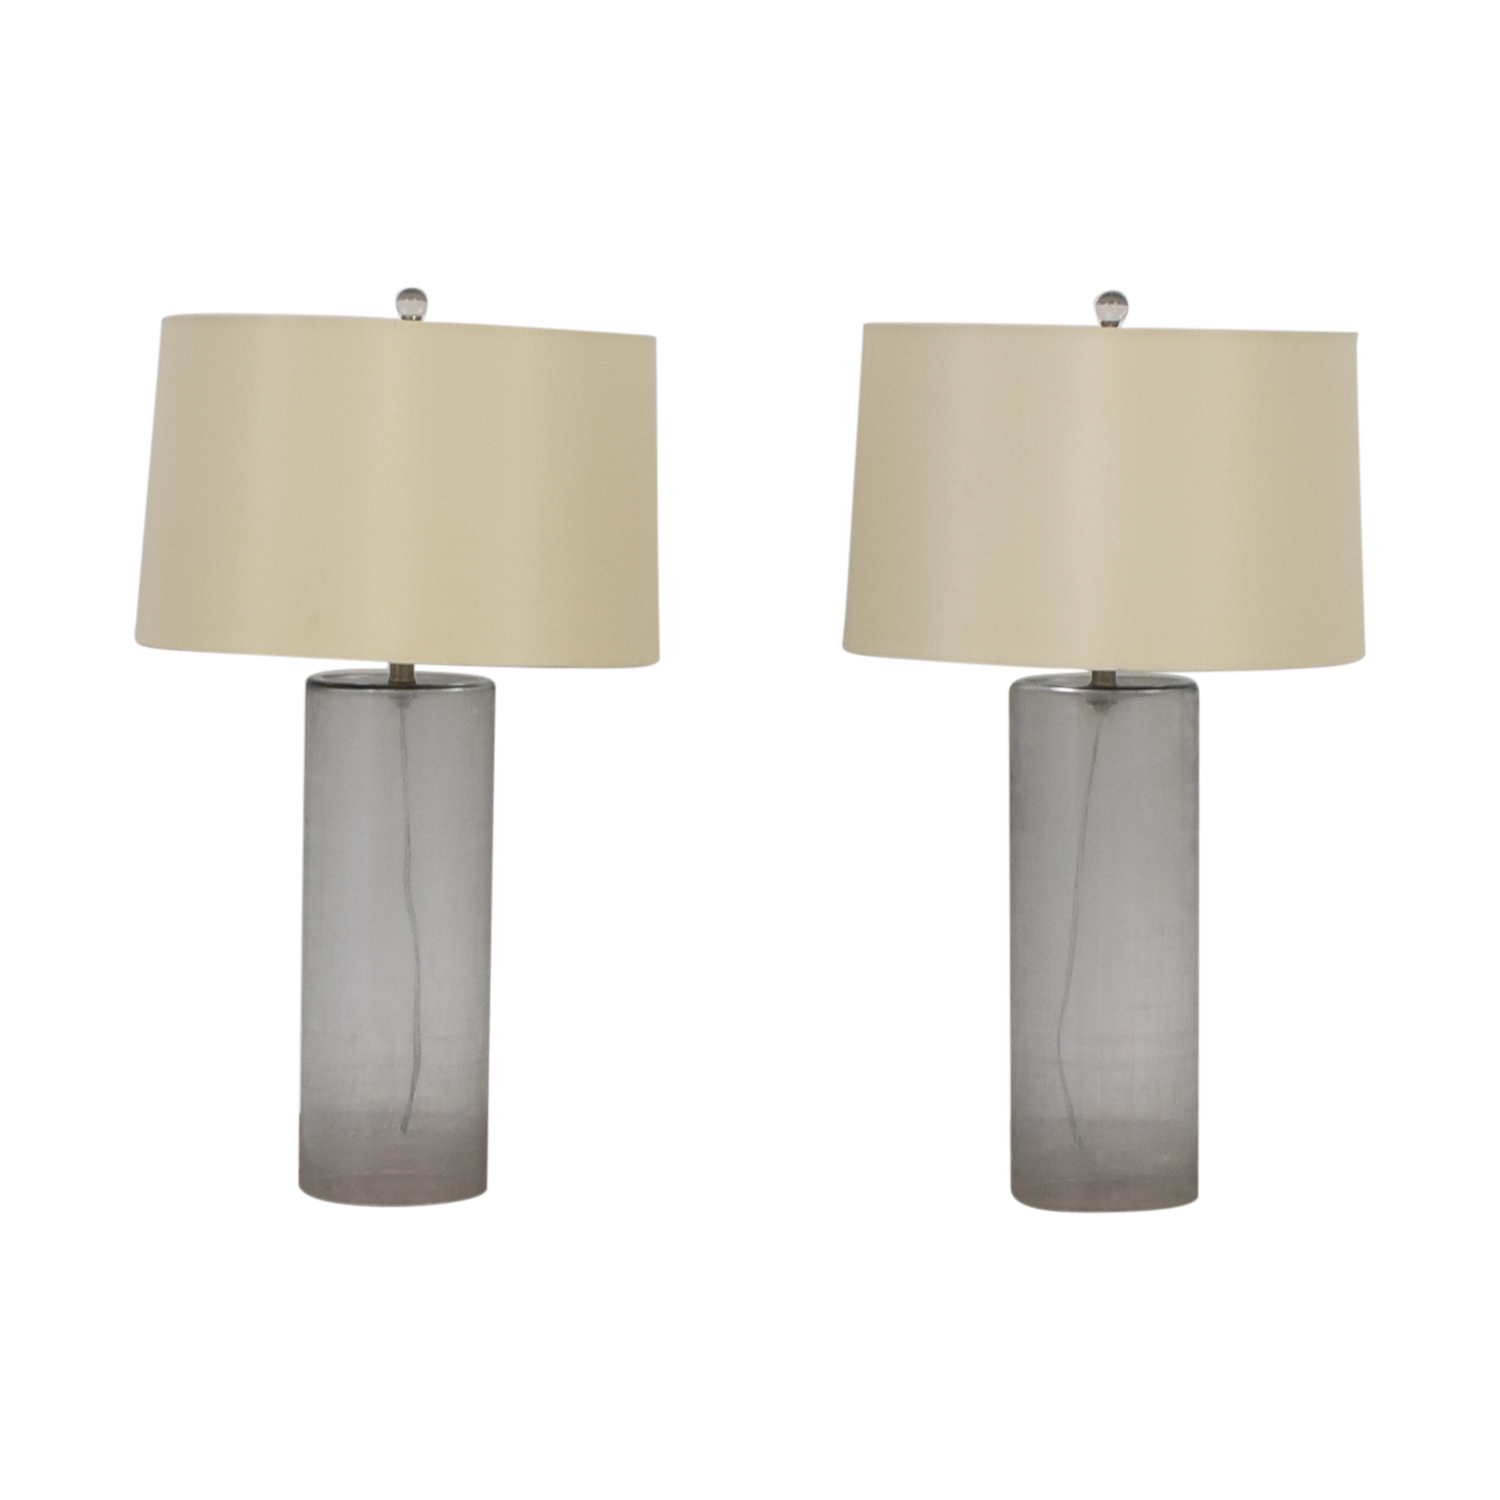 Mitchell Gold + Bob Williams Mitchell Gold + Bob Williams Etched Glass Table Lamps dimensions